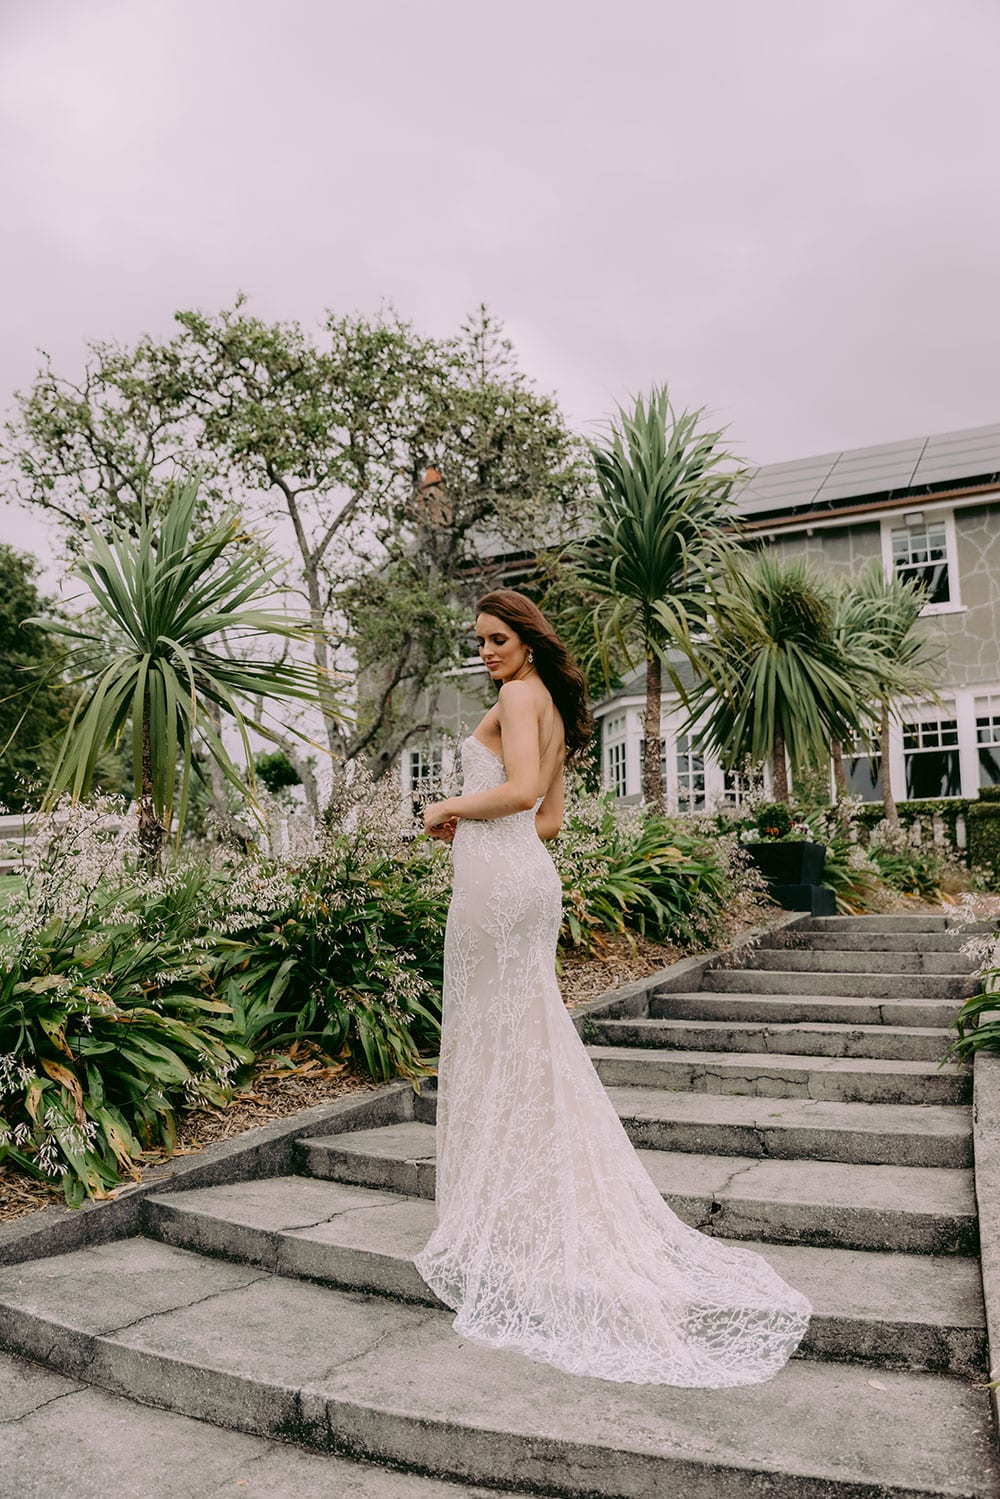 Nera Wedding gown from Vinka Design - Feminine, form-fitting strapless lace wedding dress. Boned stretch base that sculpts and hugs the figure with delicate blossom lace appliqued by hand in to flatter the shape of the body. Model wearing gown showing full length dress in Clevedon Gardens near Auckland.